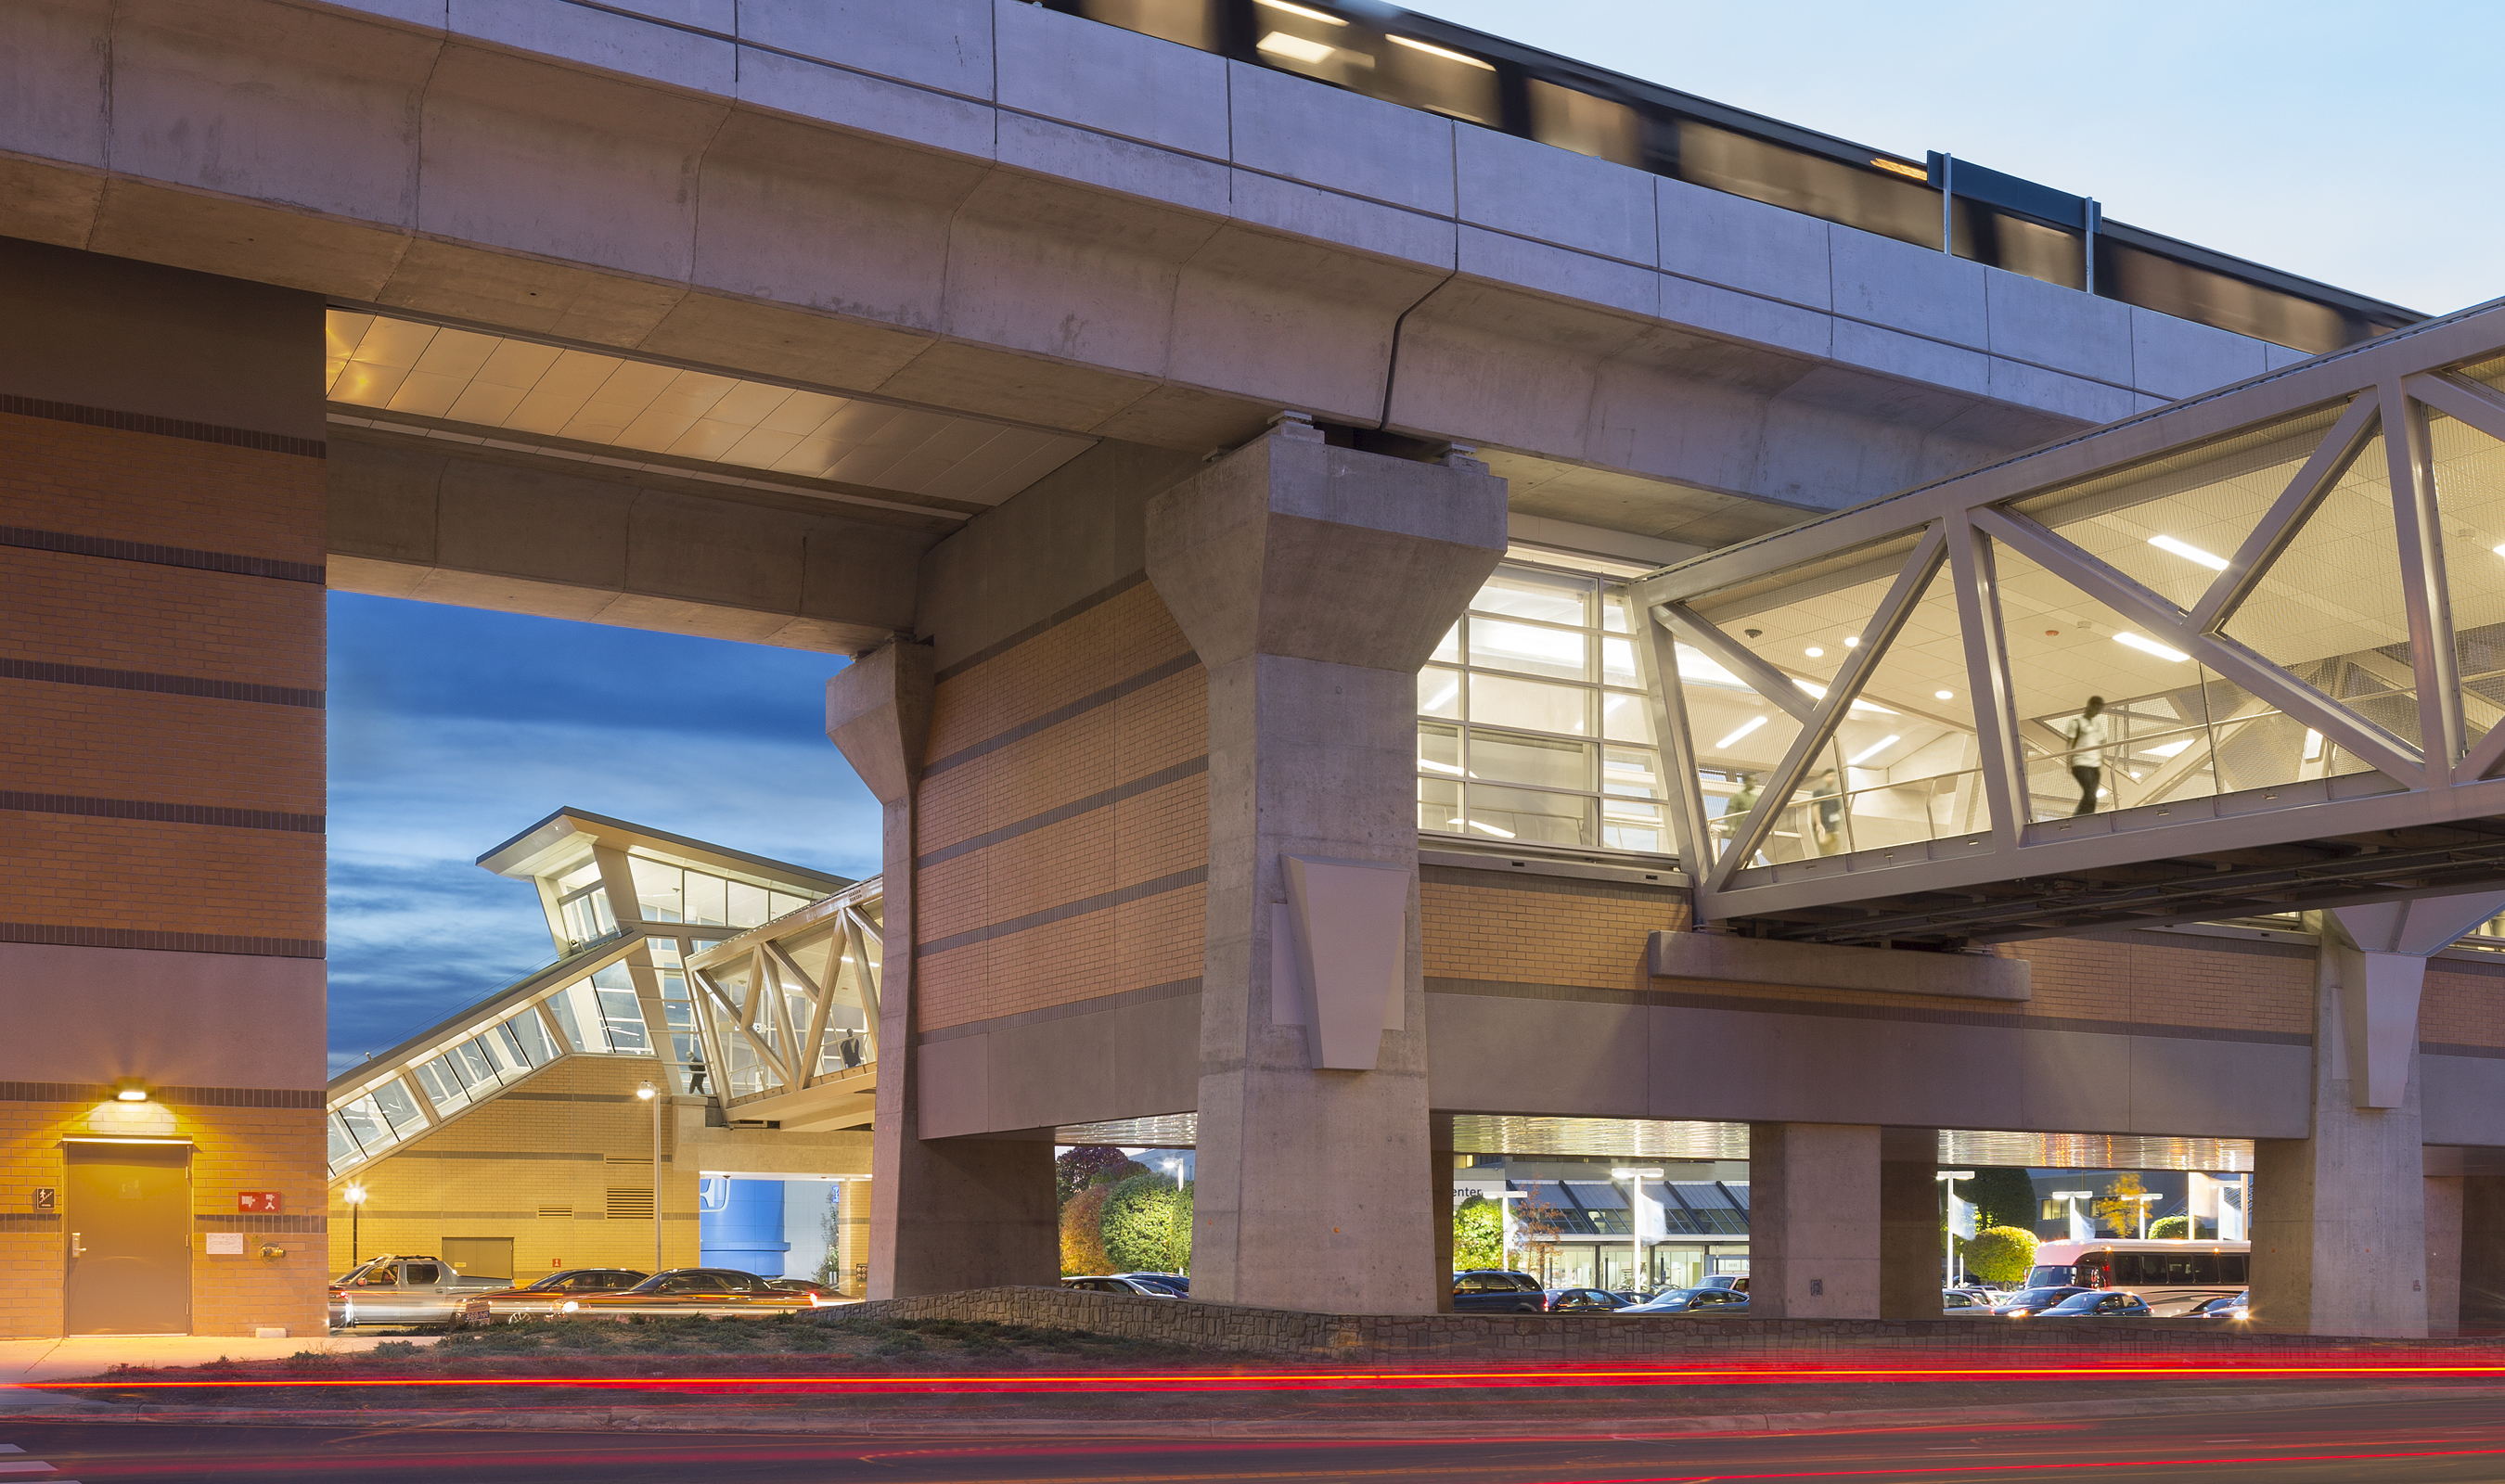 The pedestrian bridges connect metro stations to parking lots – helping commuters cross busy roads more safely.